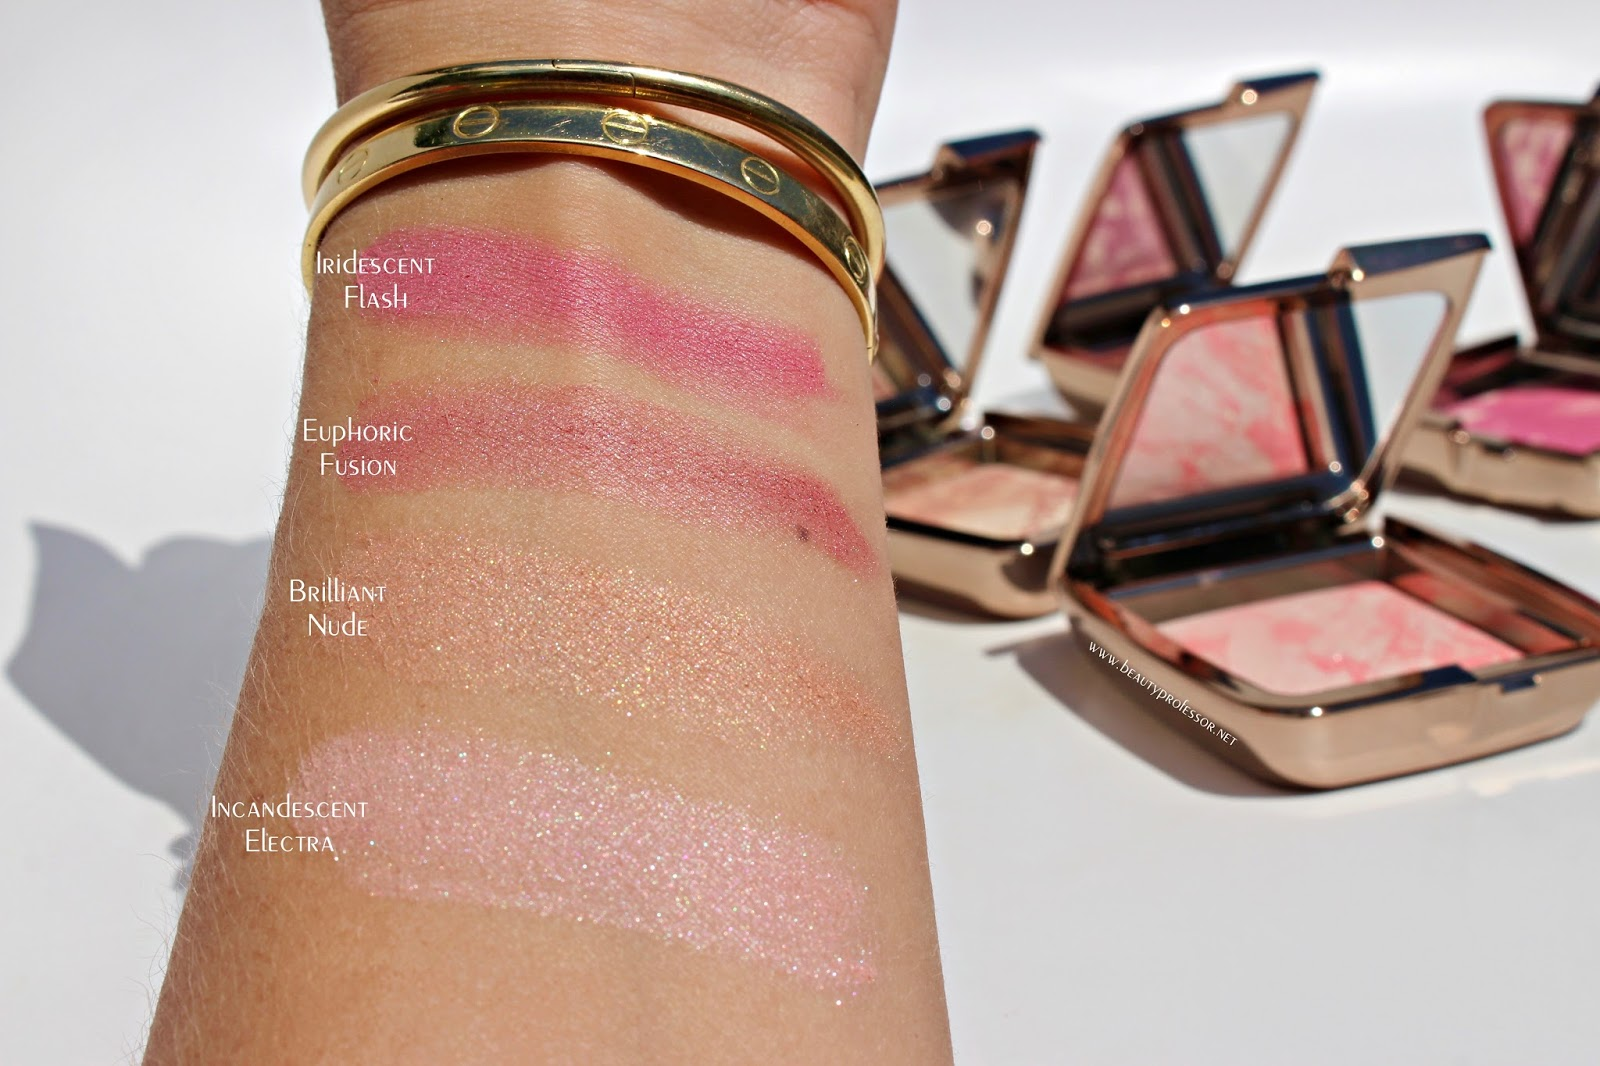 Grandelash Hourglass And Foundation Oh My Major Newness At Lock It Cushion Lip Pen 10 Nudi Beige Heavy Swatches In Direct Sunlight